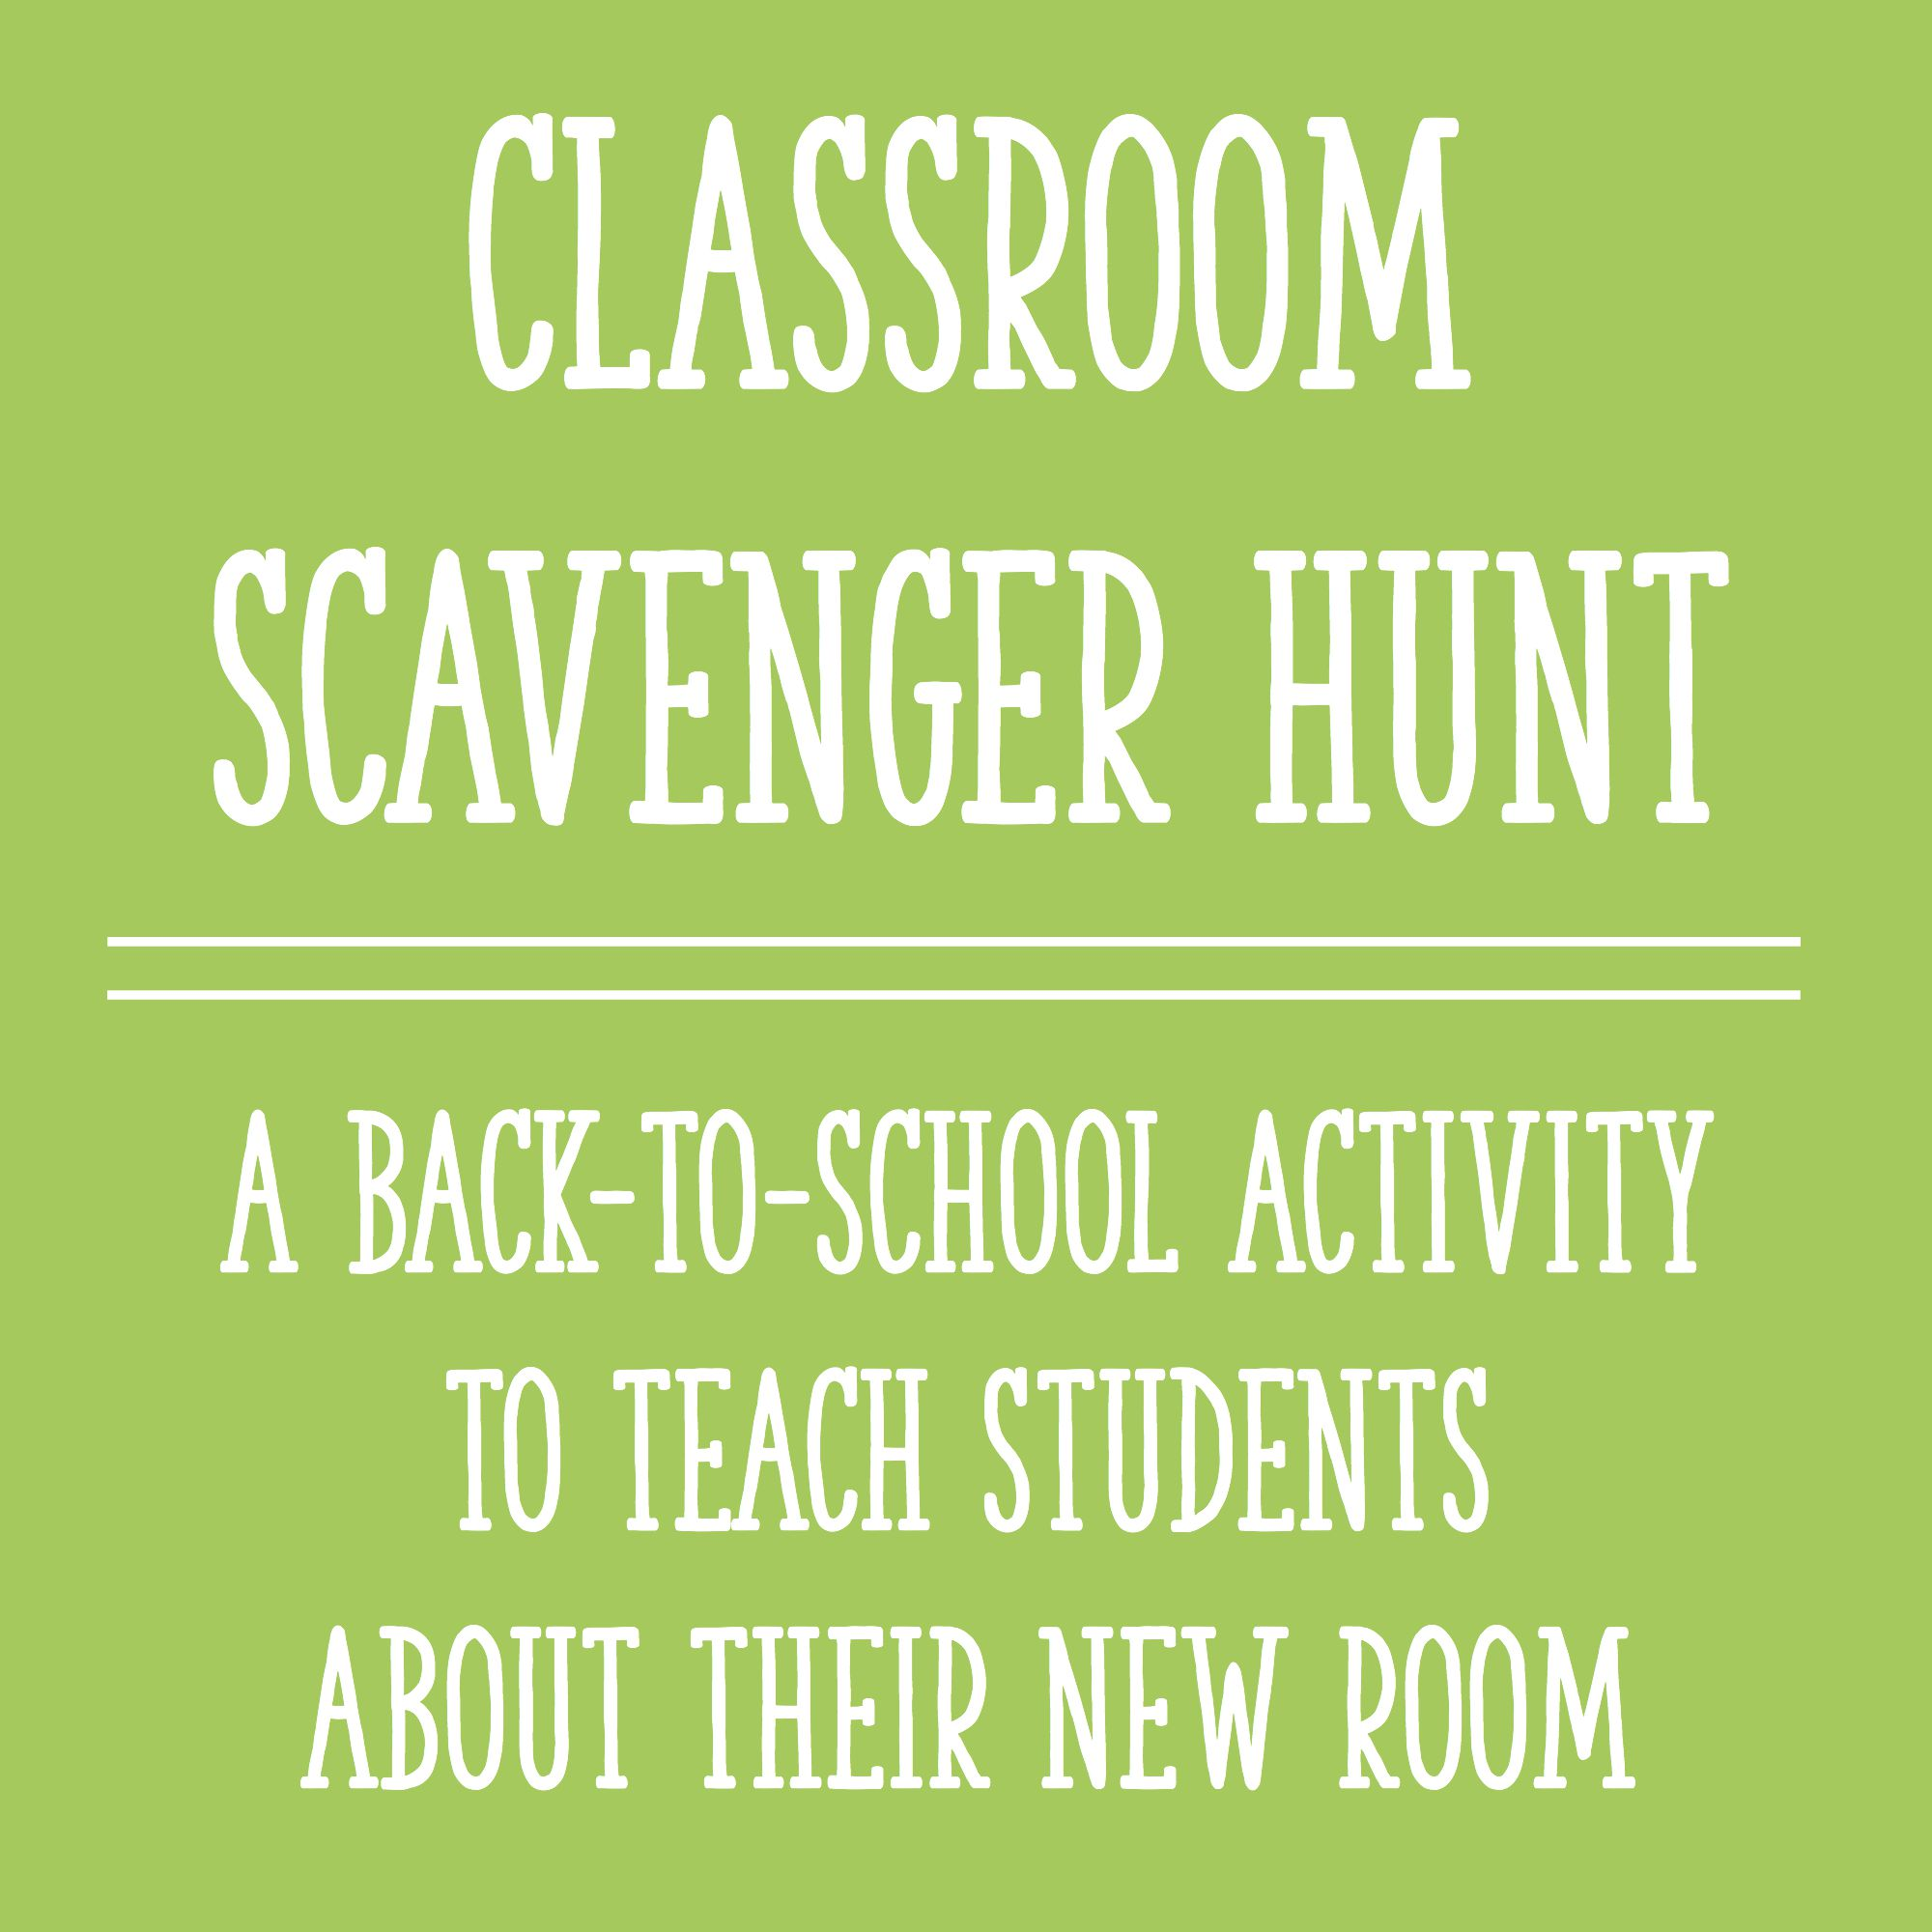 Classroom Scavenger Hunt A Back To School Activity To Teach Students About Their New Room